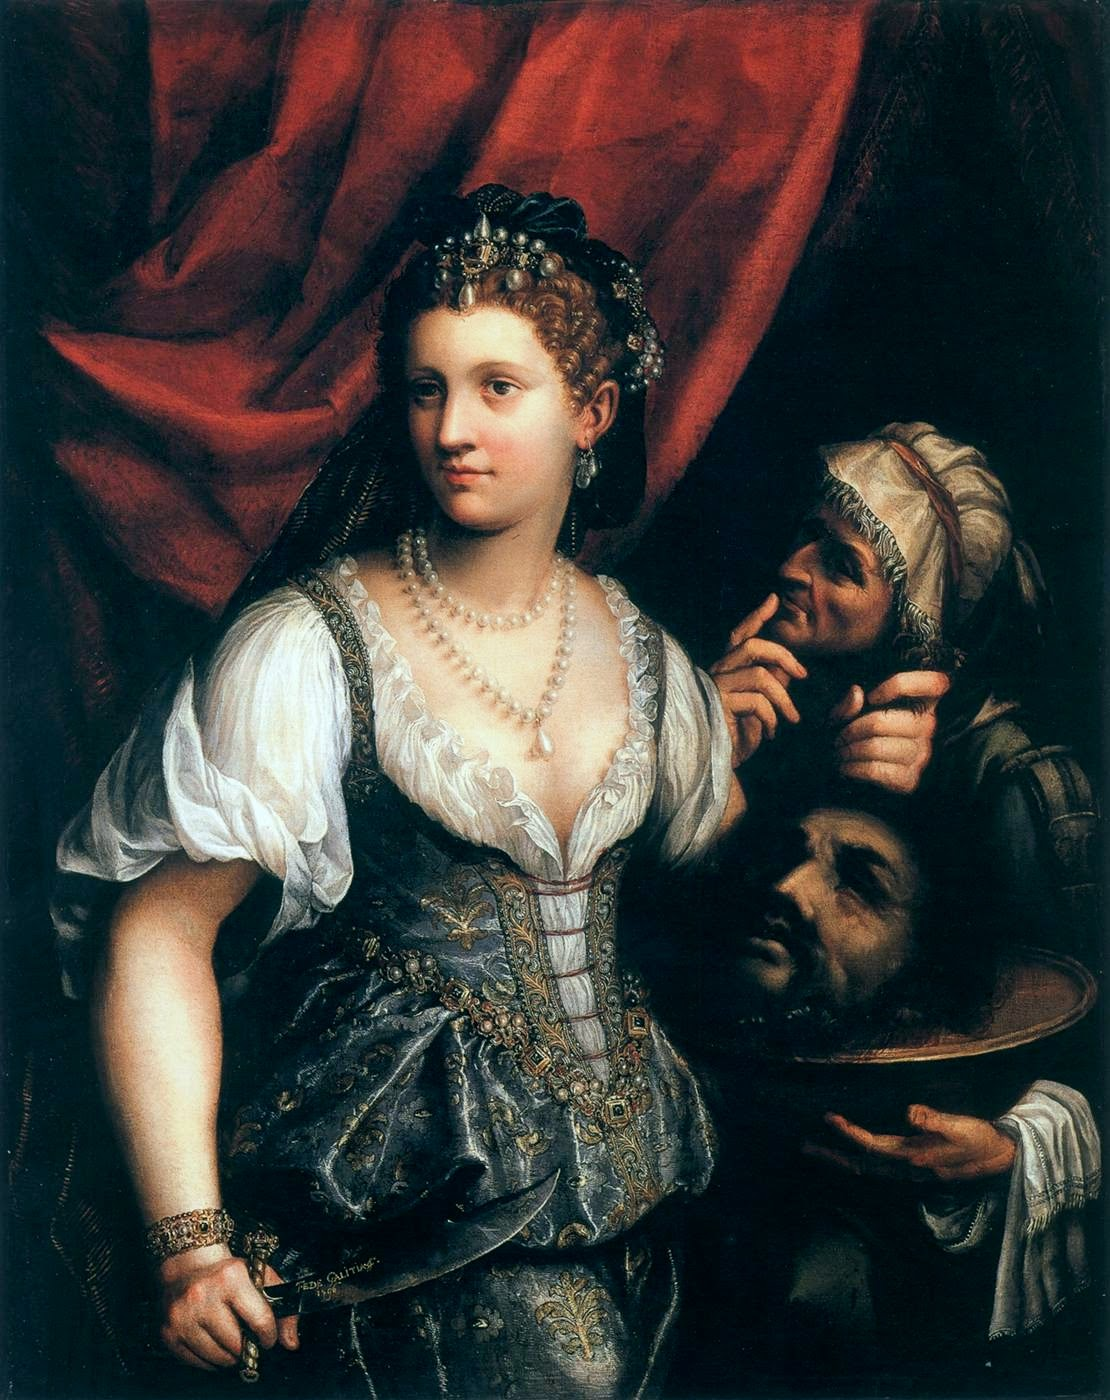 Judith With the Head of Holofernes (1593), Fede Galizia (autoportrait supposé)